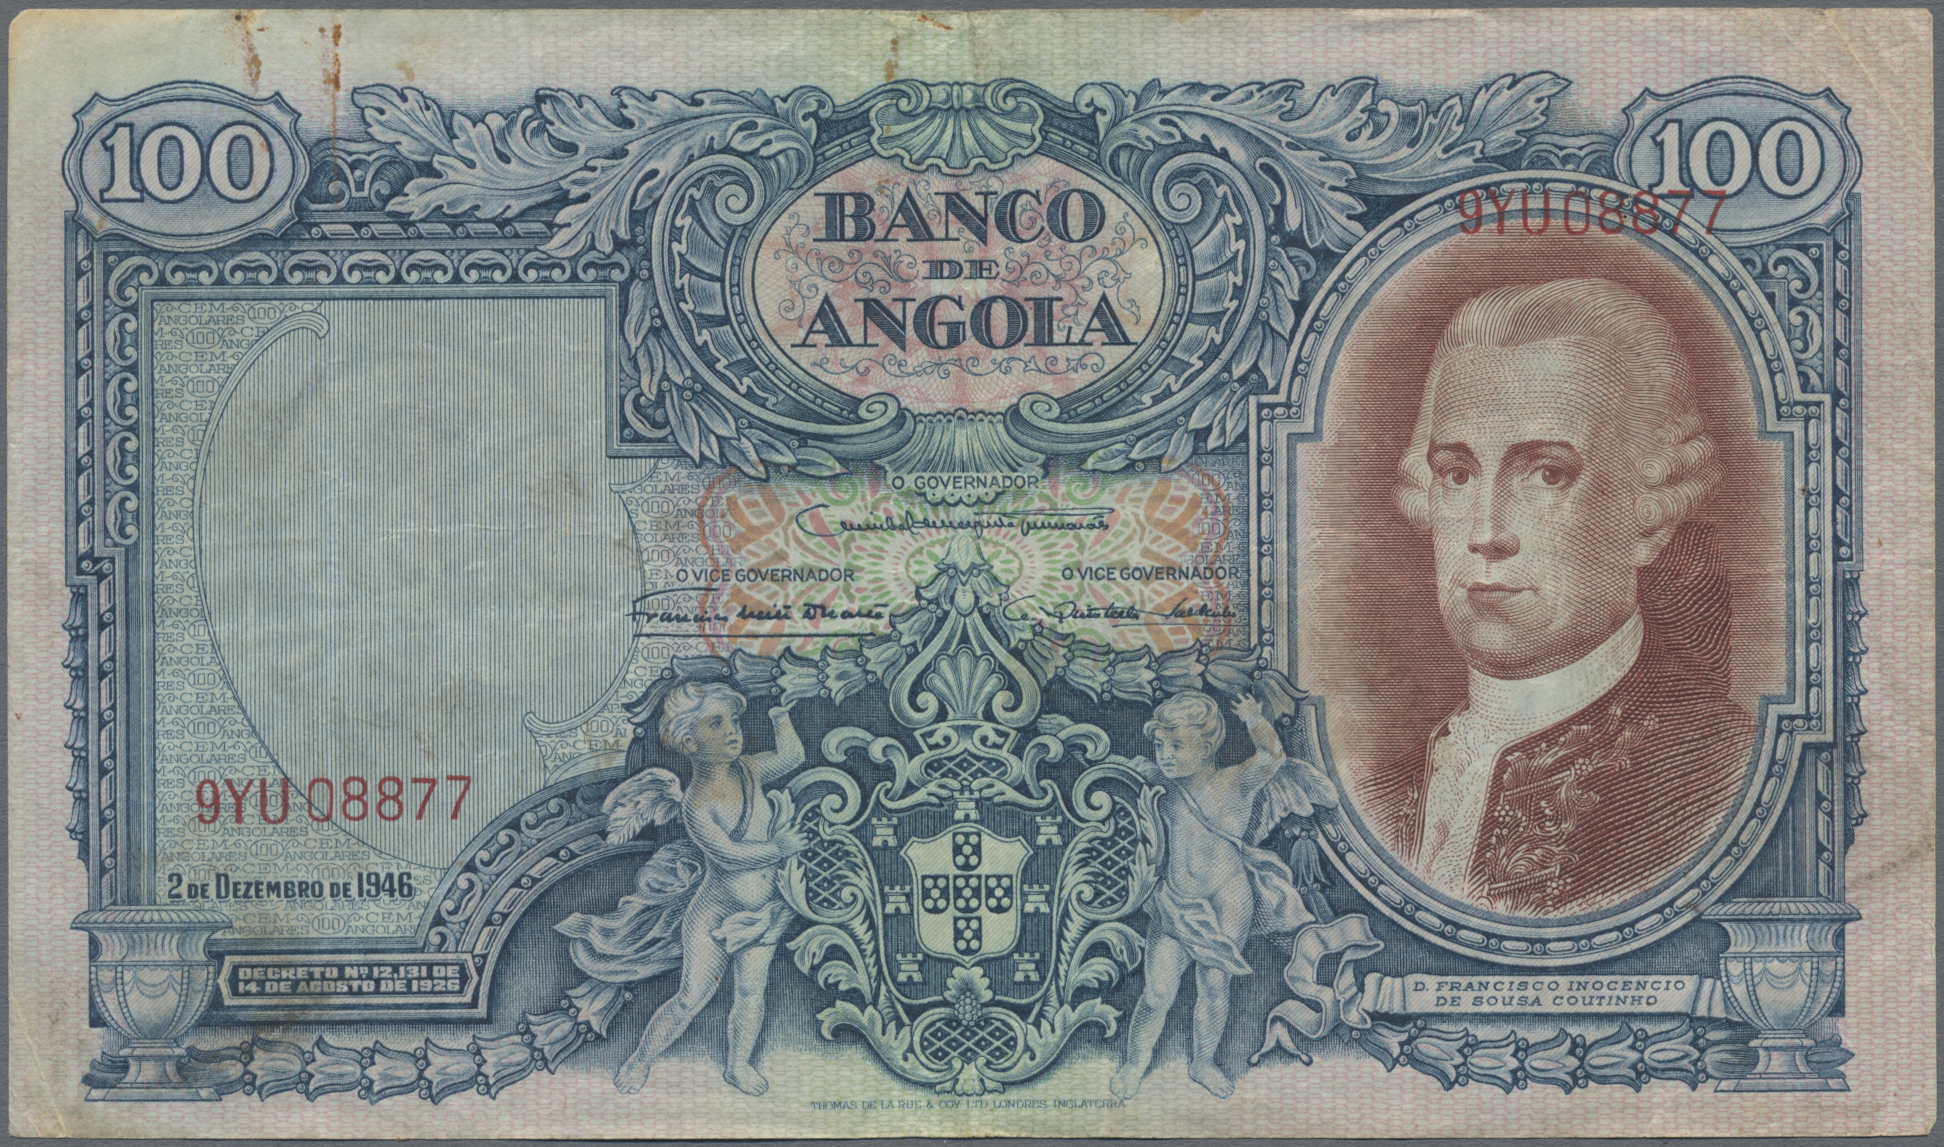 Lot 00015 - Angola | Banknoten  -  Auktionshaus Christoph Gärtner GmbH & Co. KG Sale #48 The Banknotes